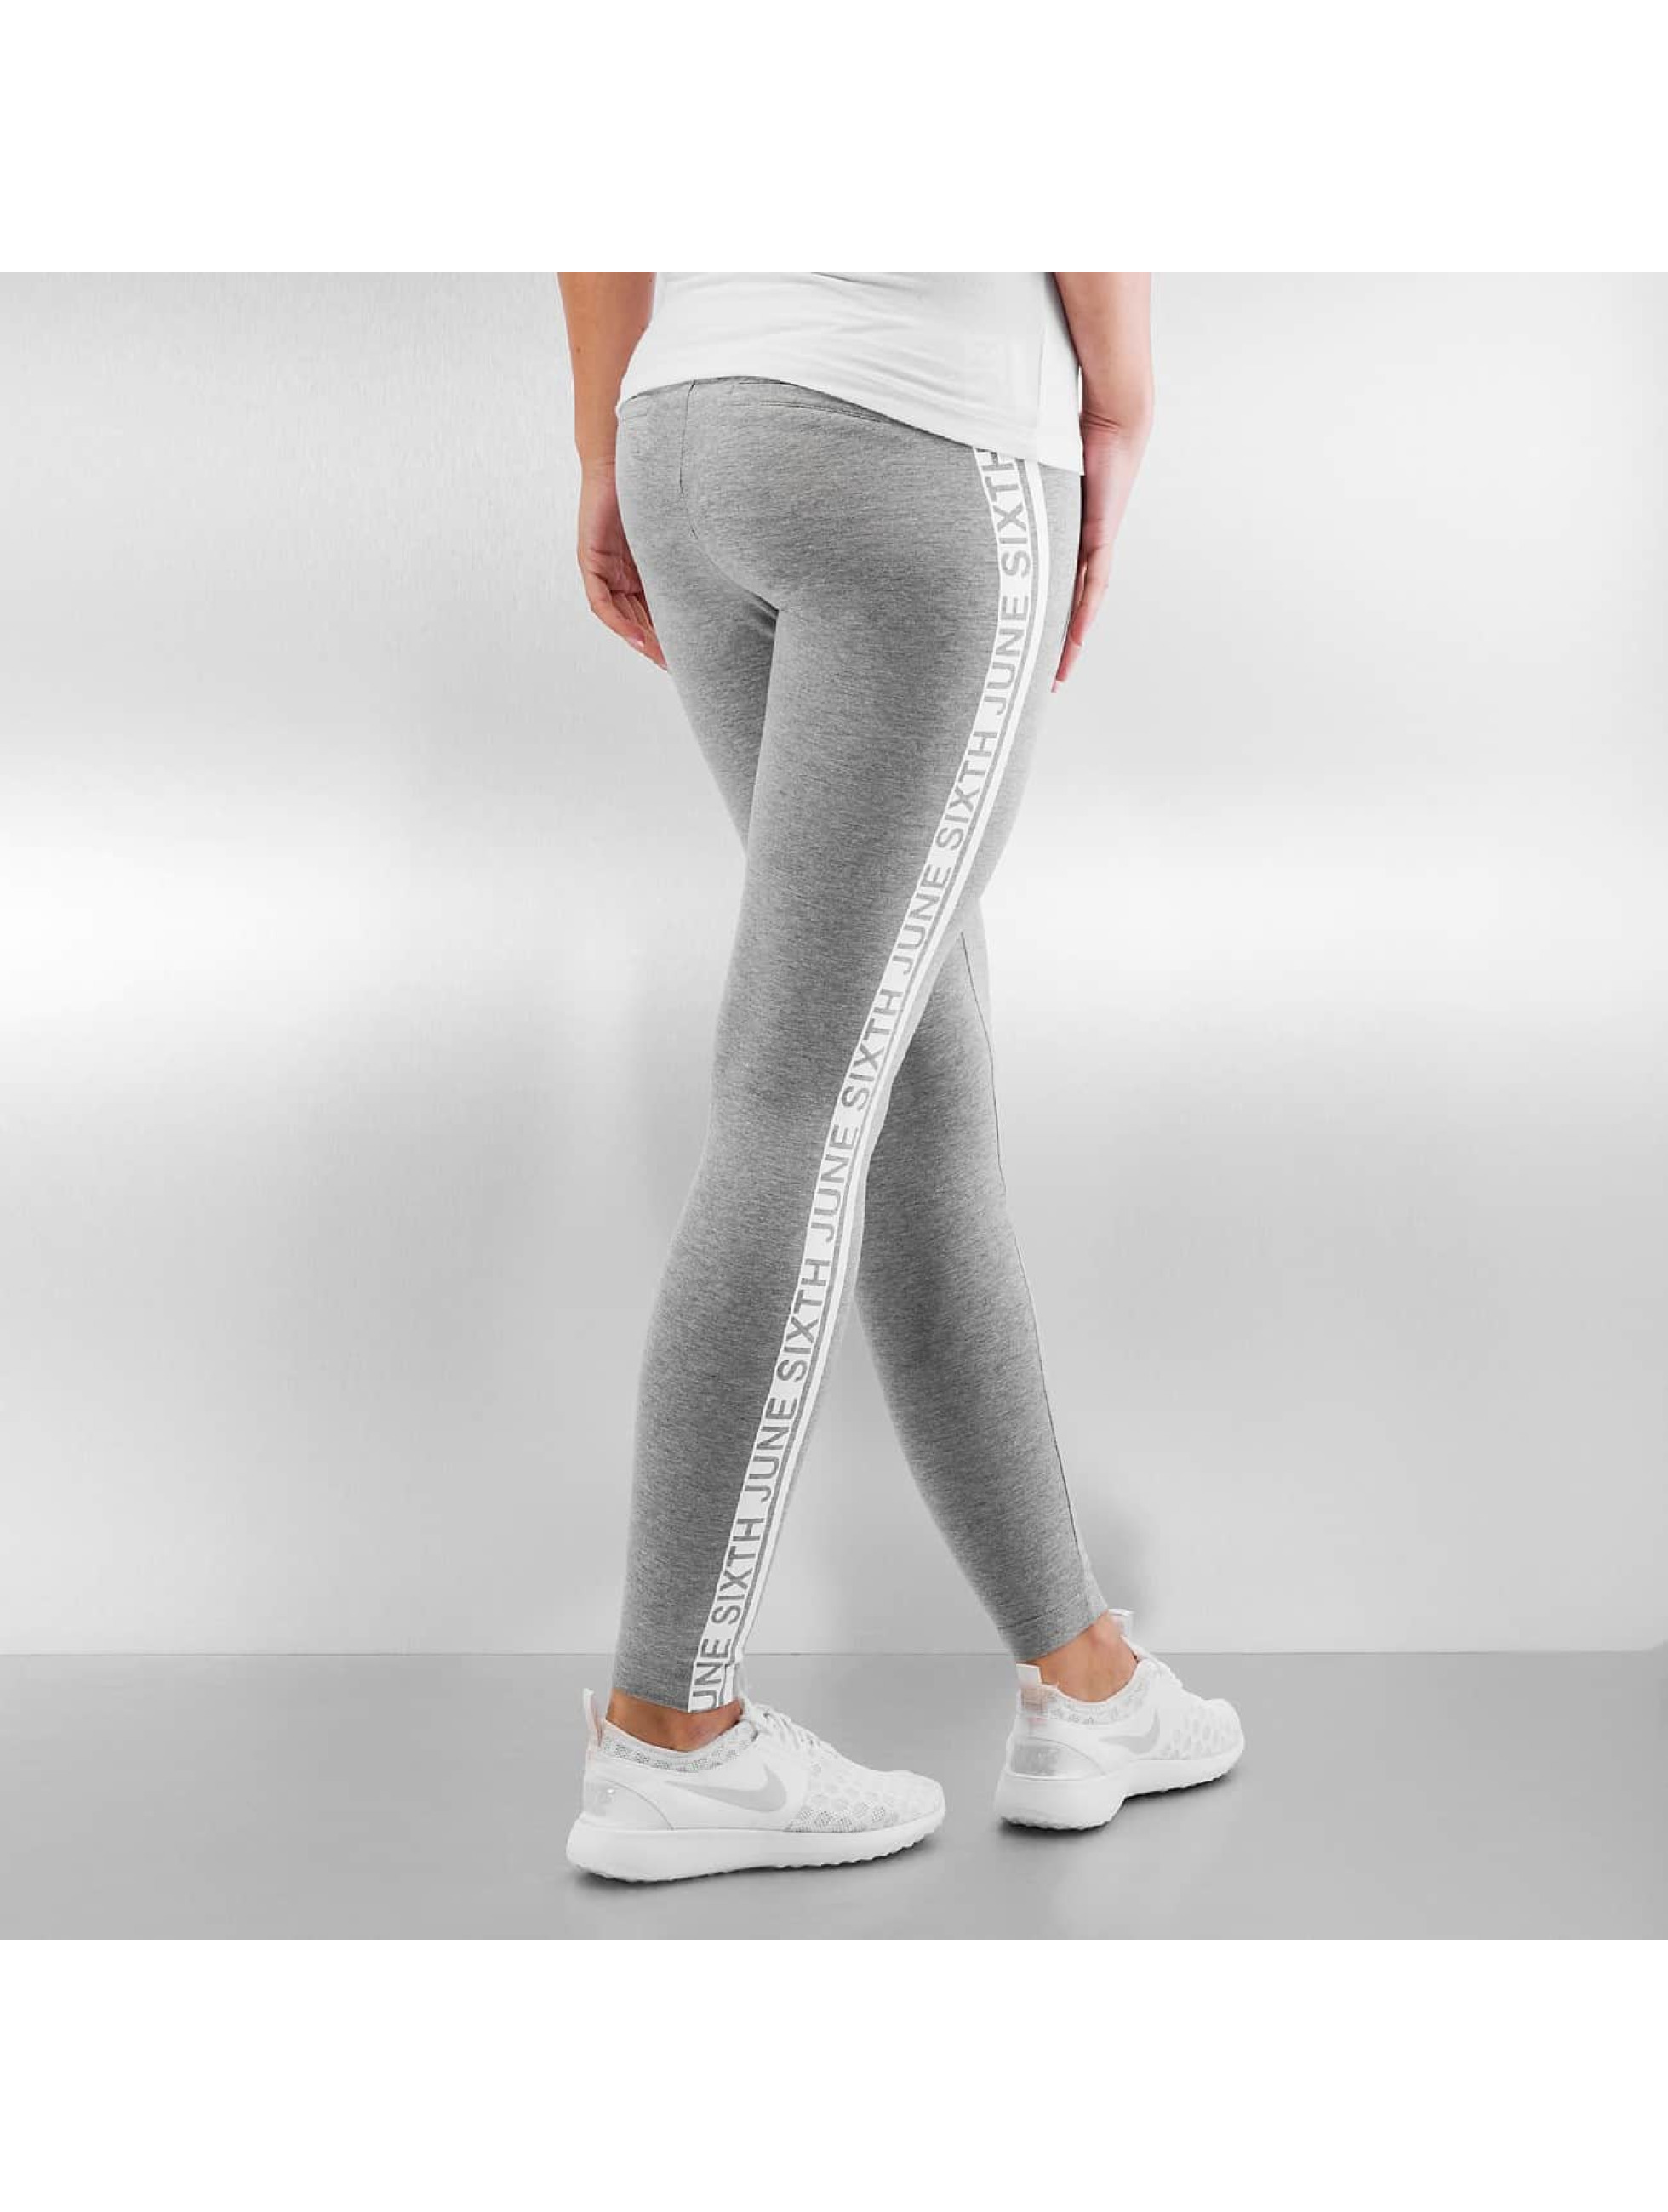 Sixth June Legging Sport Logo grau